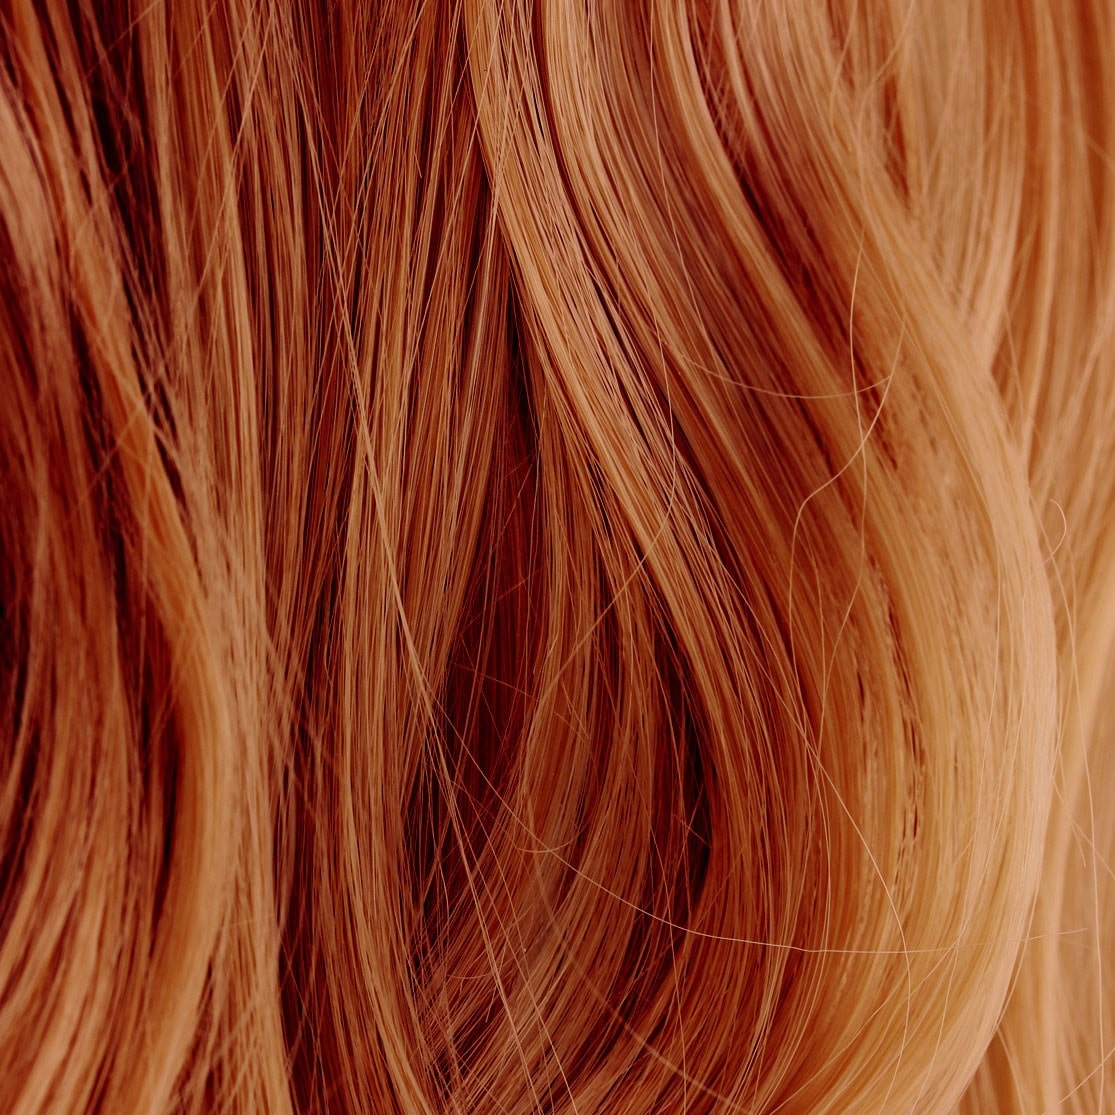 henna dyed hair strands, close up.